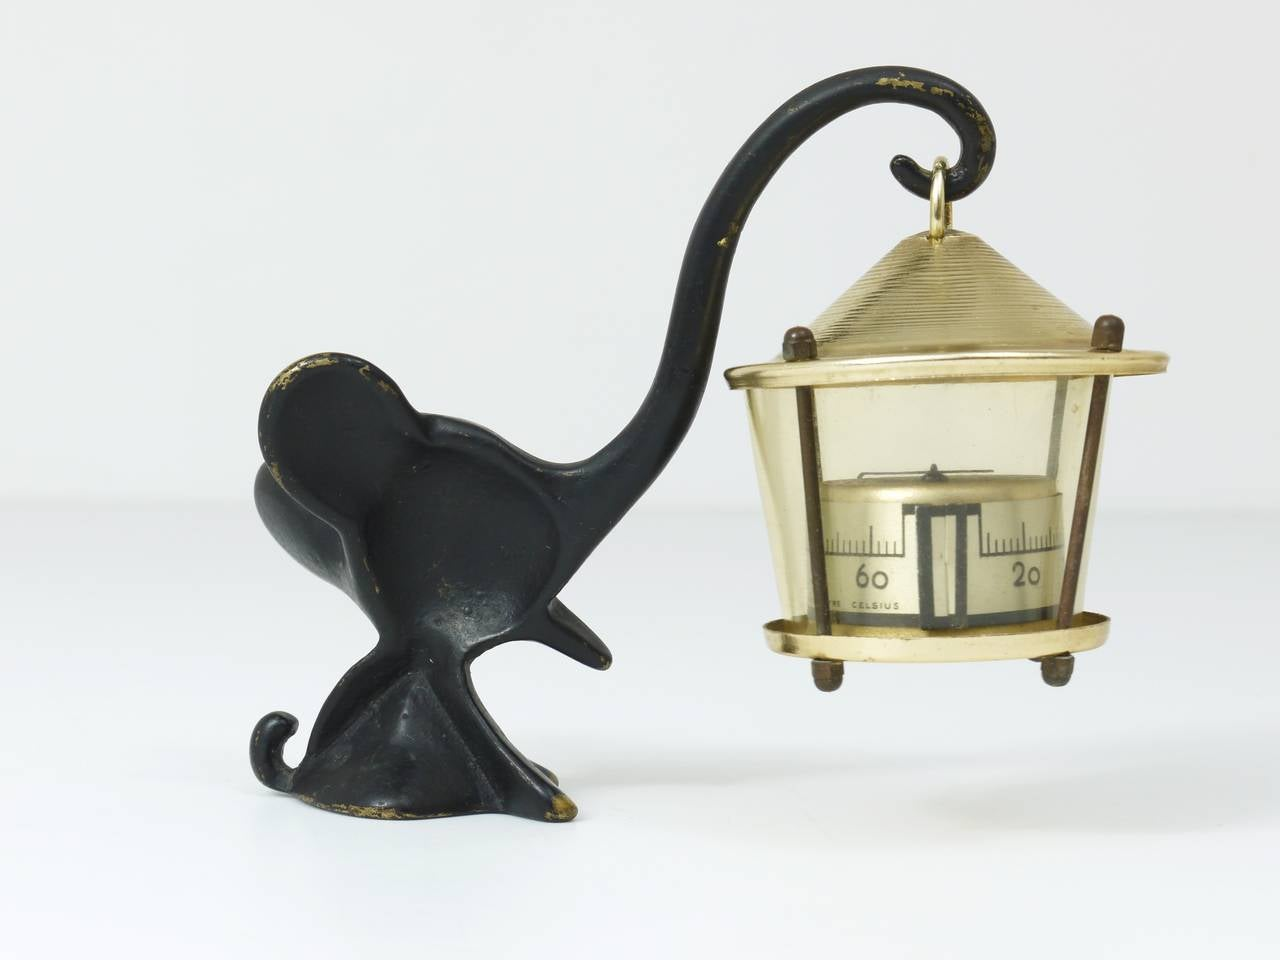 Mid-Century Modern Walter Bosse Elephant Figurine with Thermometer by Hertha Baller, Austria, 1950s For Sale